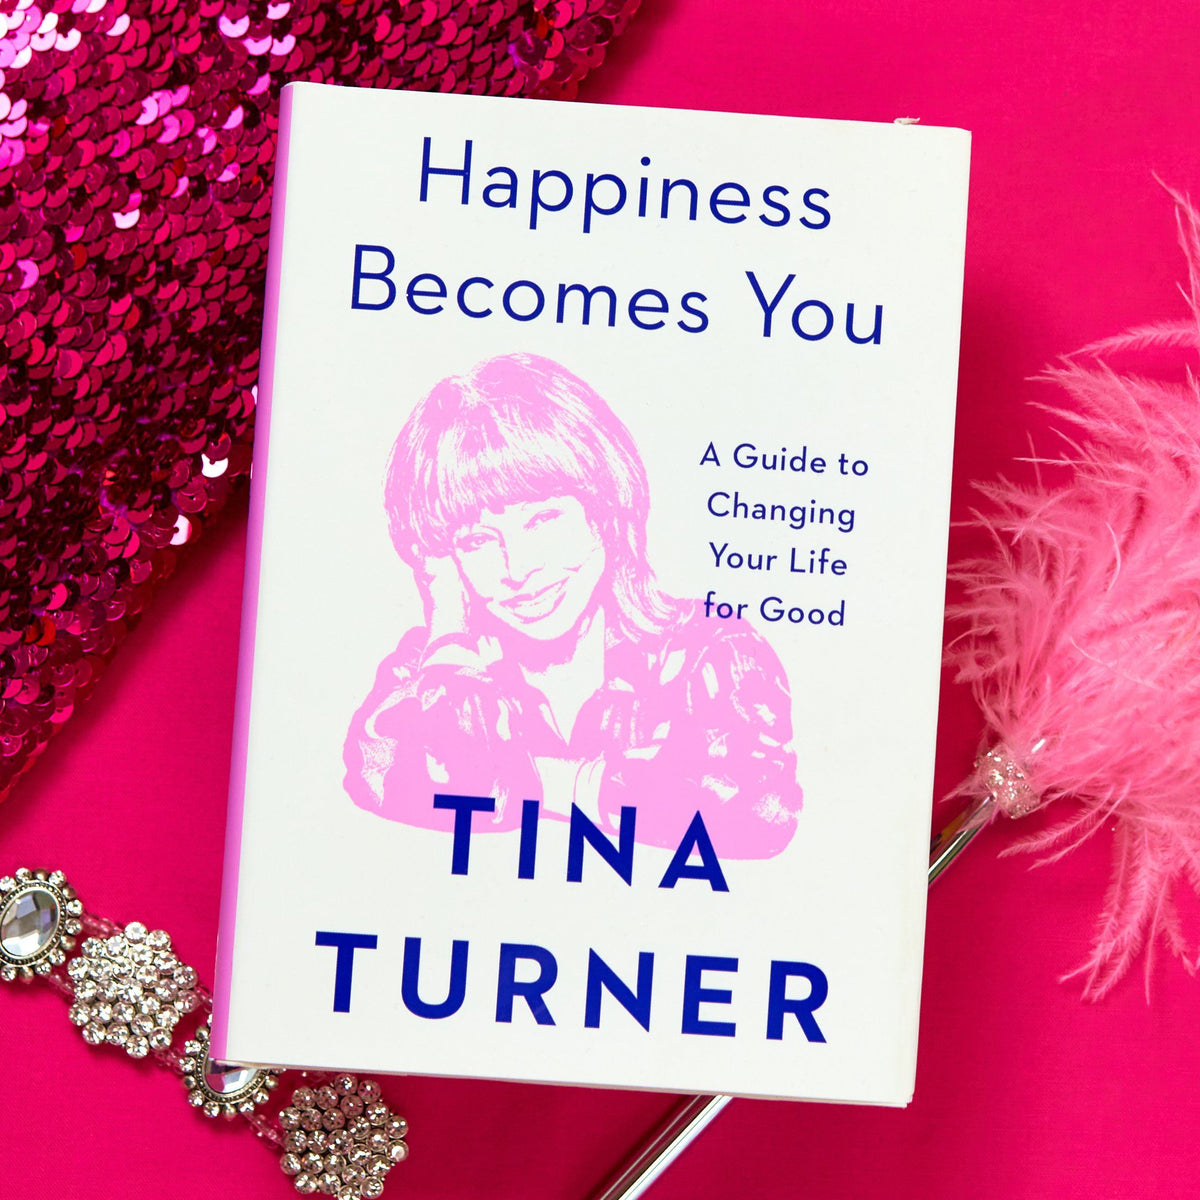 Happiness Becomes You Book - A Guide to Changing Your Life for Good